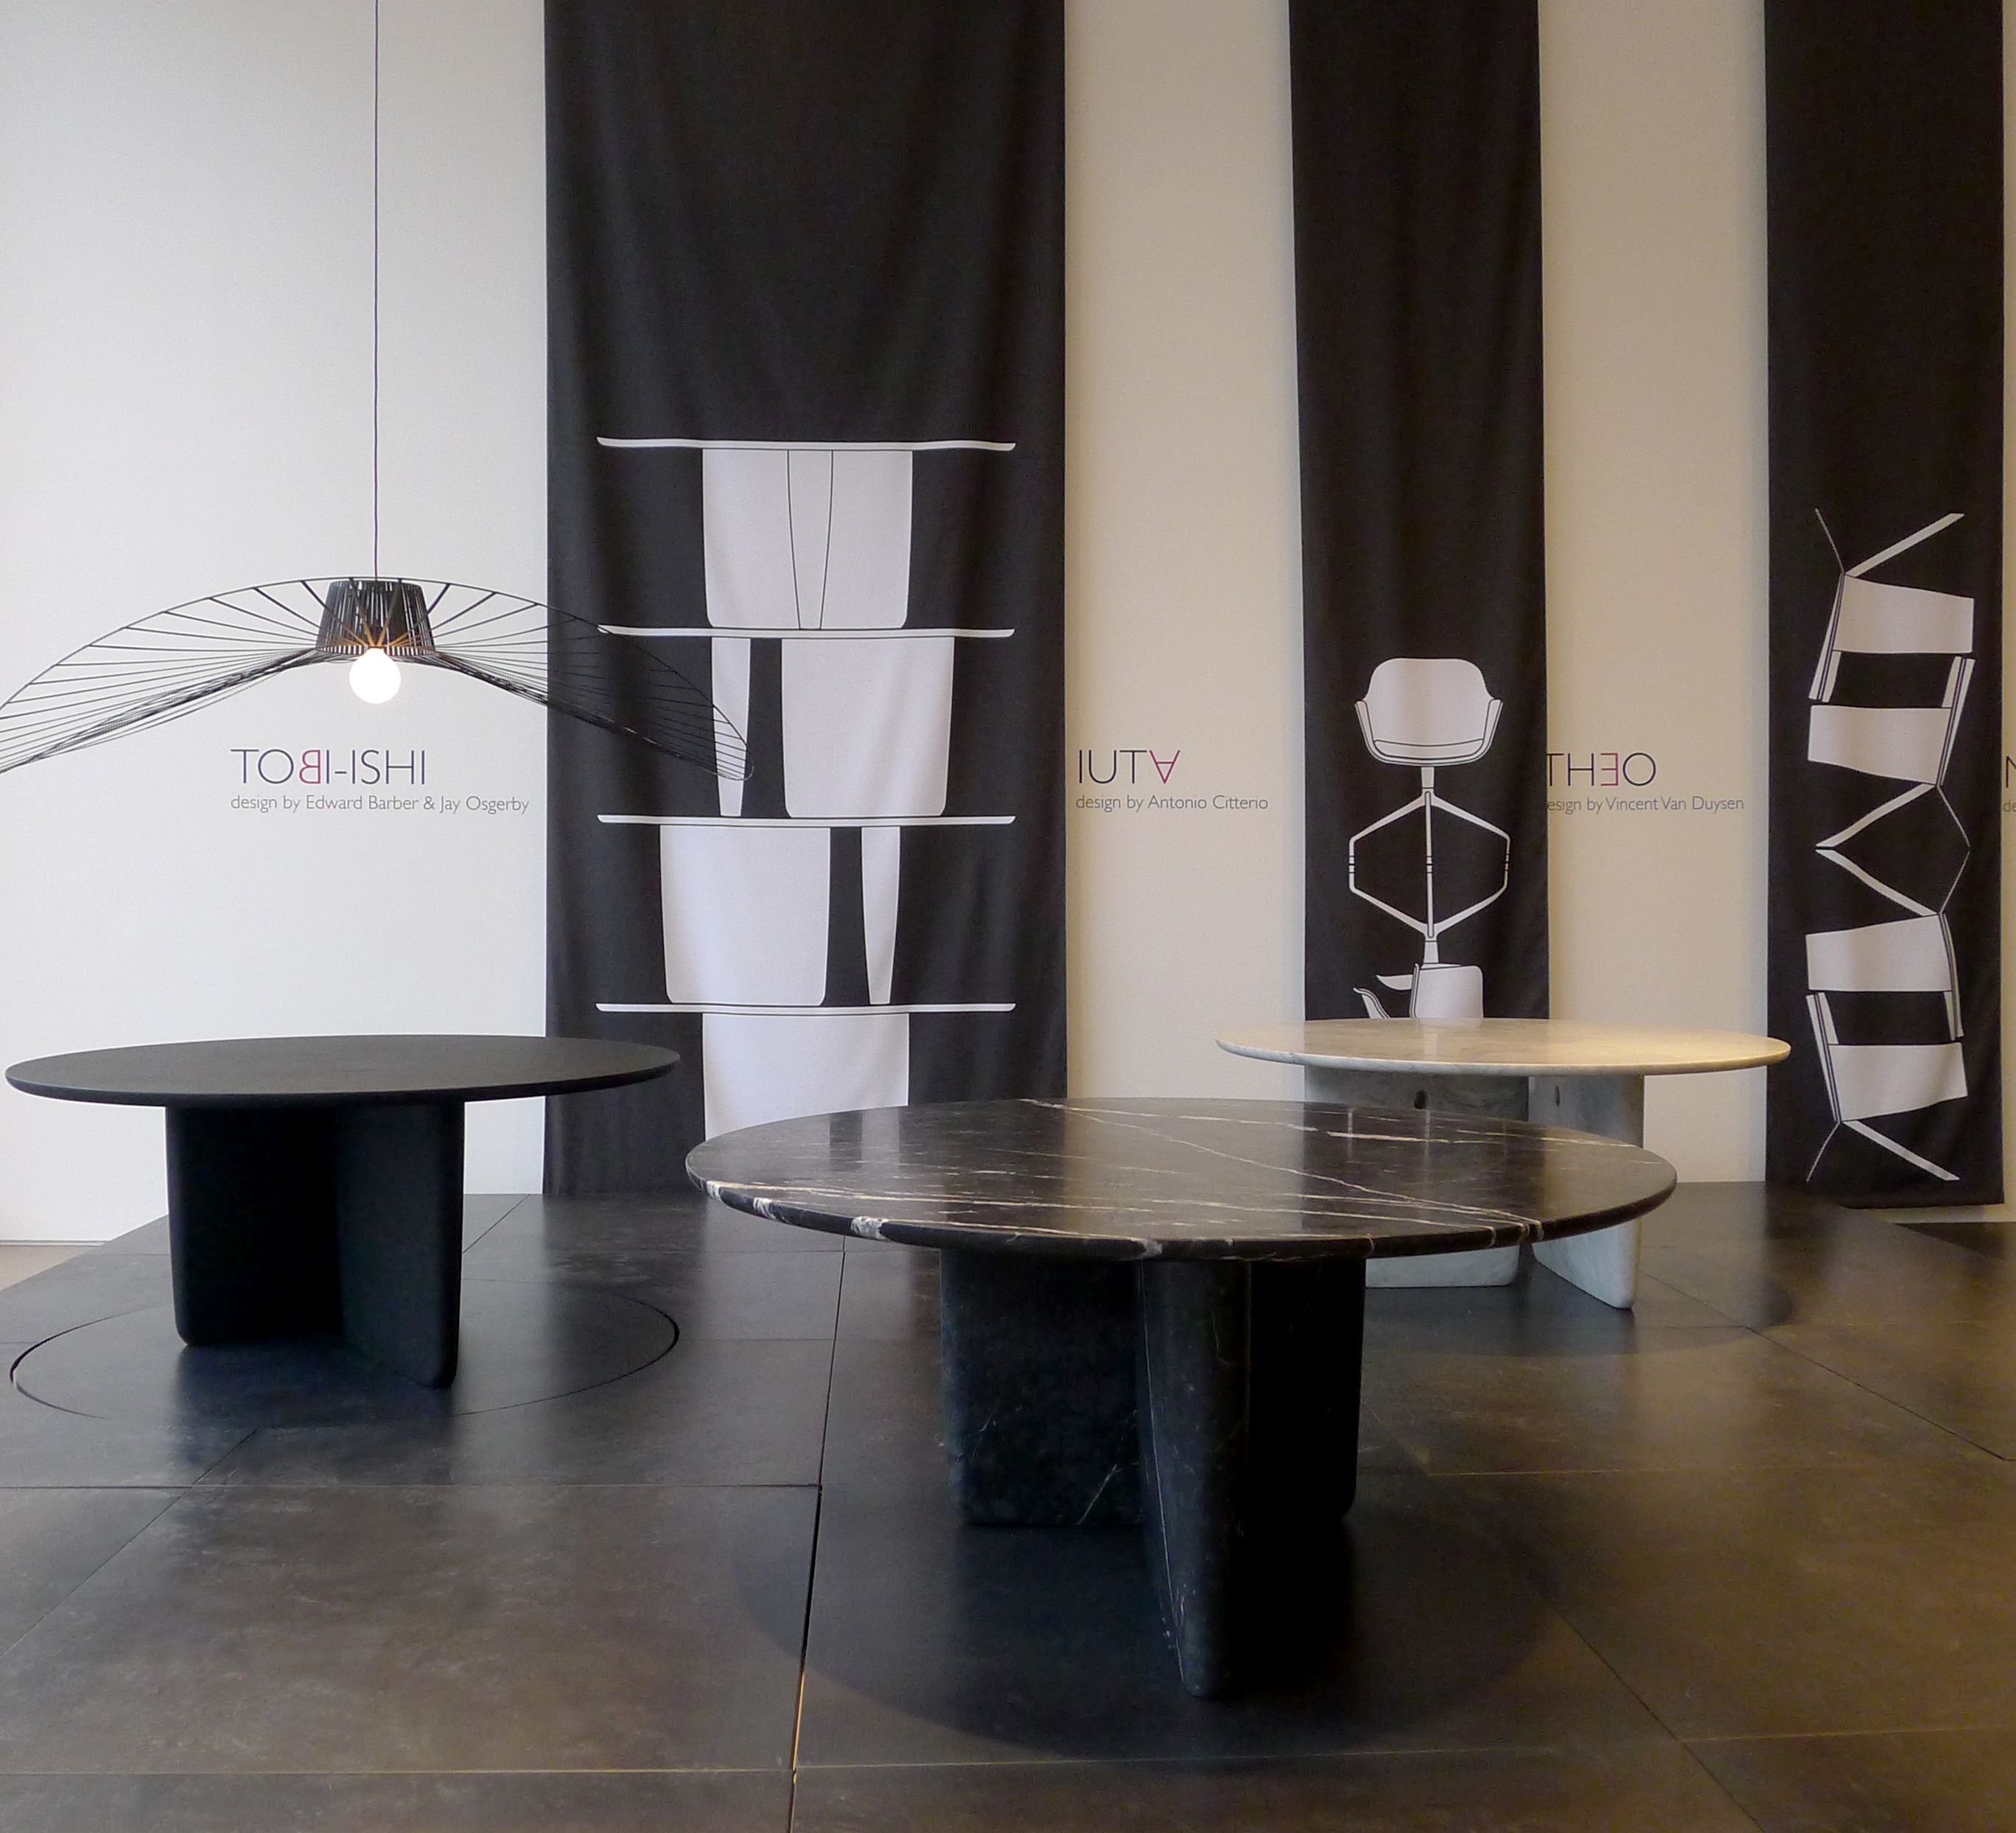 PREVIEW IN LONDON OF THE NEW TOBI ISHI MARBLE TABLES London Design Festival